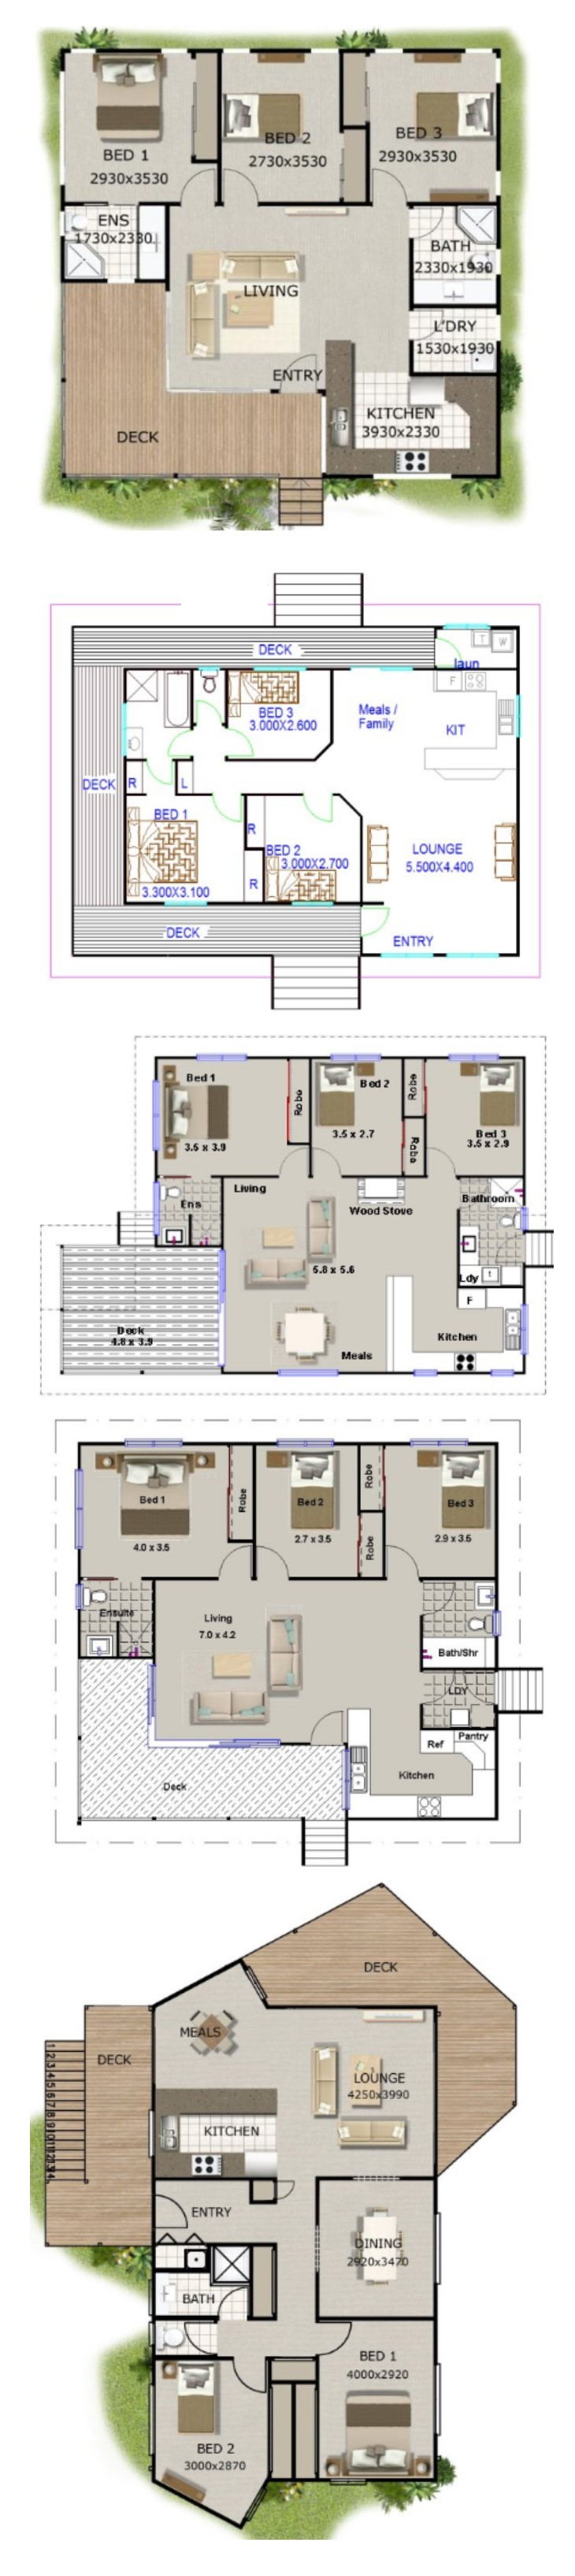 100 square meter house floor plan - Houses undersquare meters ...